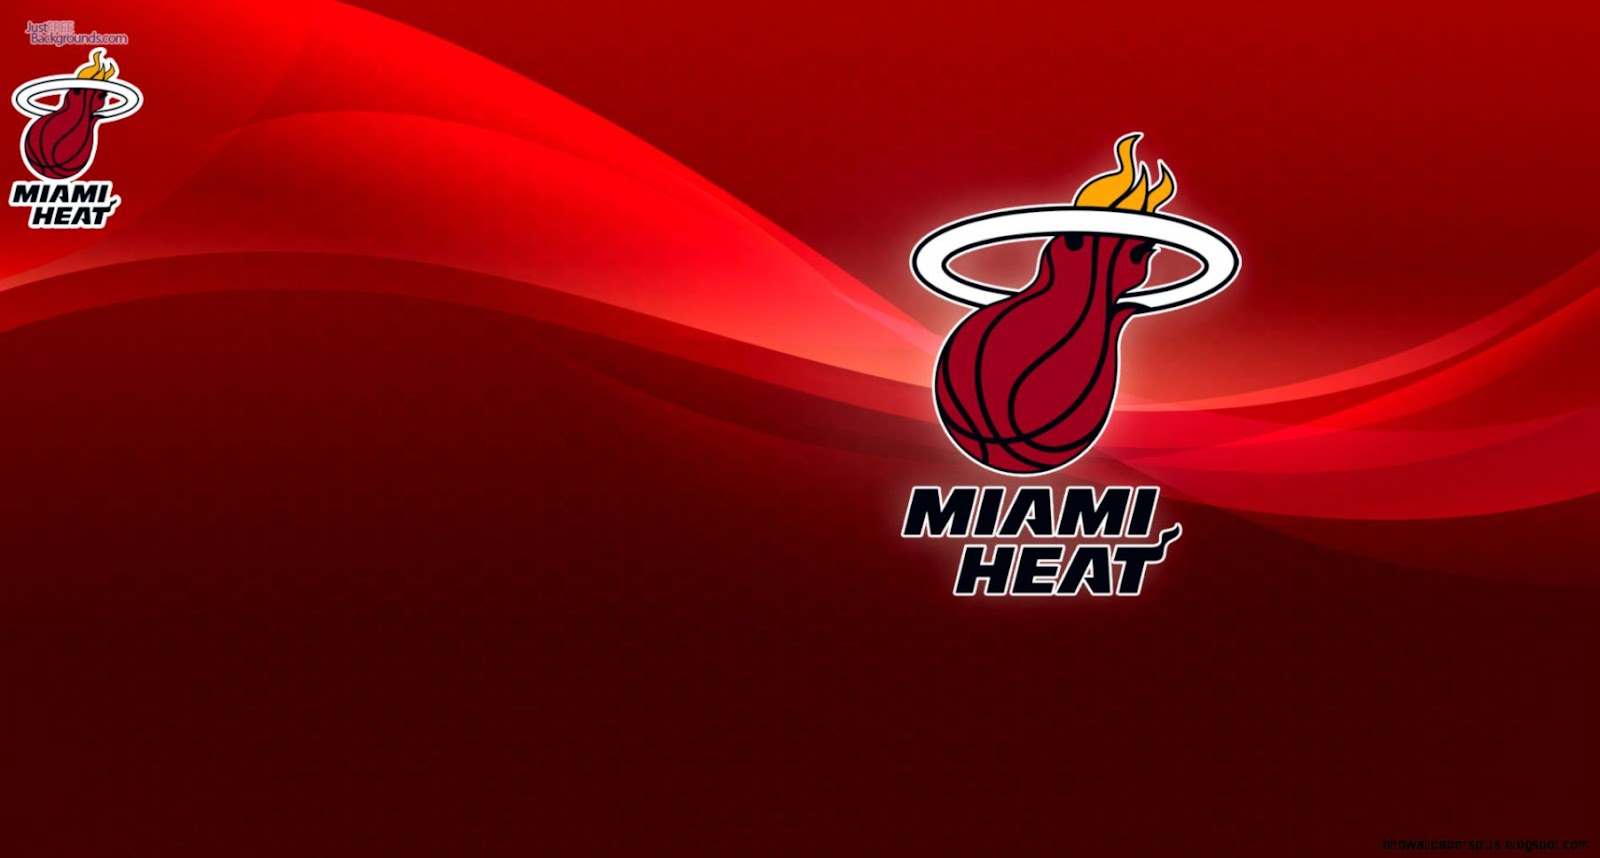 Miami Heat Logo Wallpaper Desktop